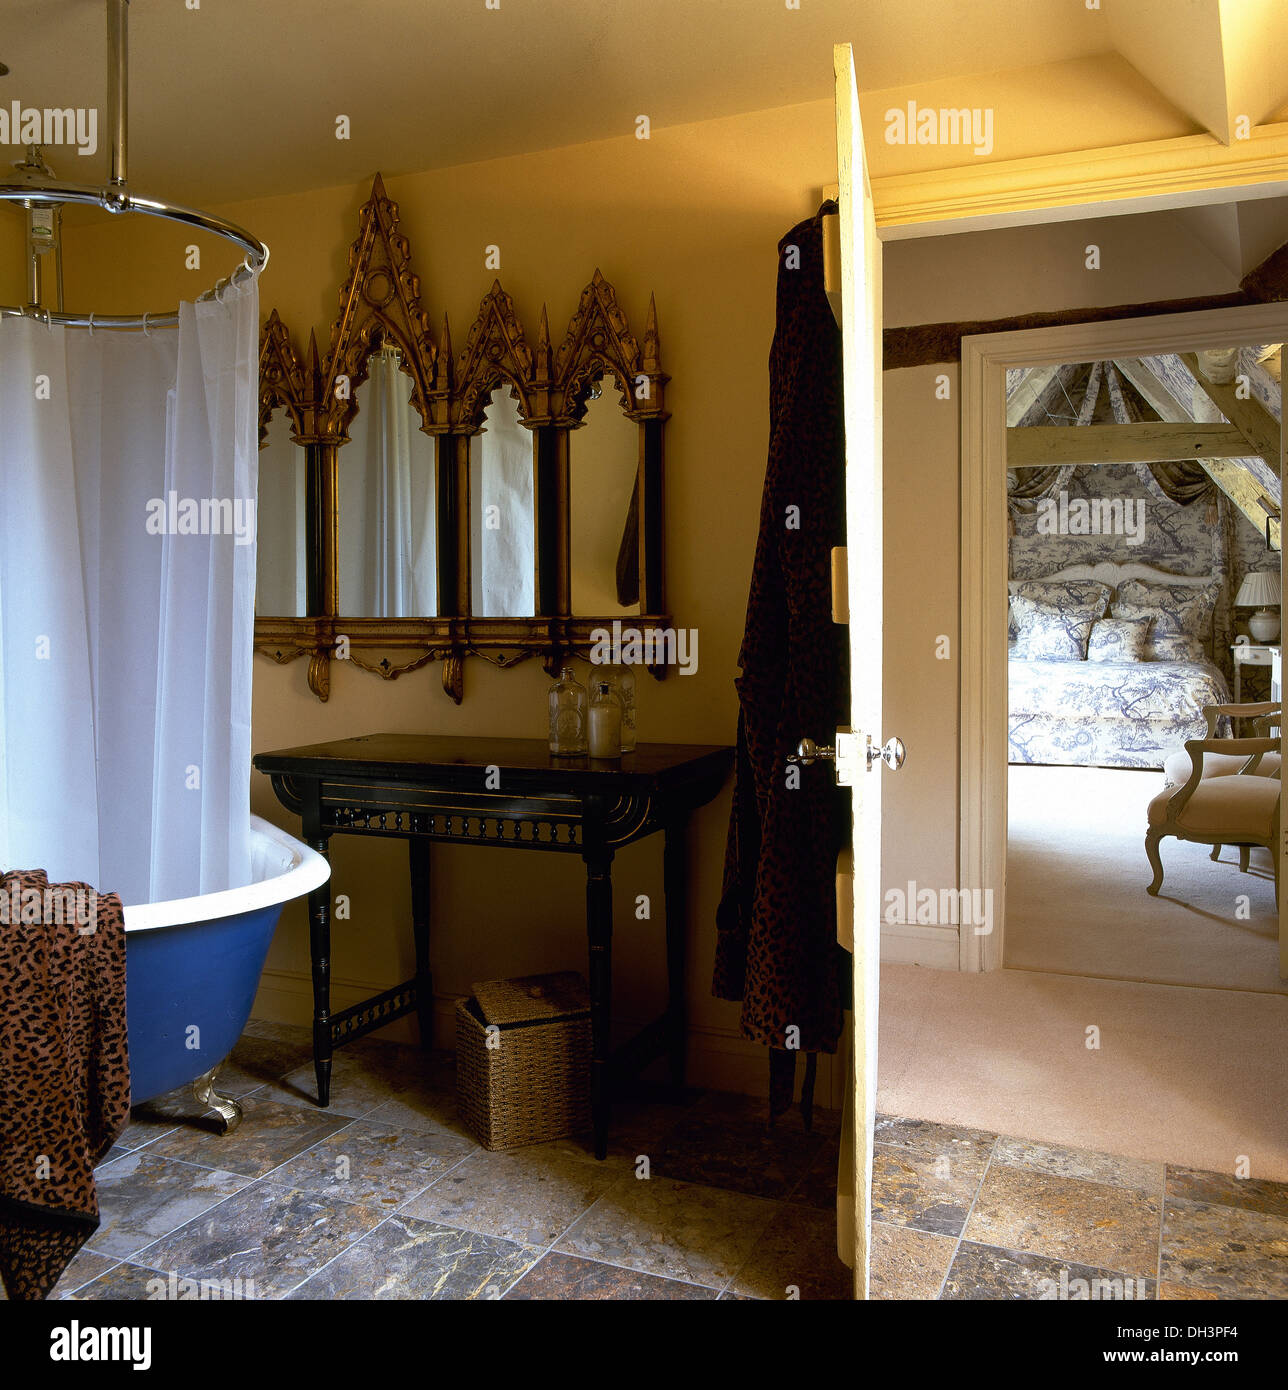 Gothic Style Mirror Above Metal Table In Bathroom With Shower Curtain On Circular Frame Roll Top Bath Country